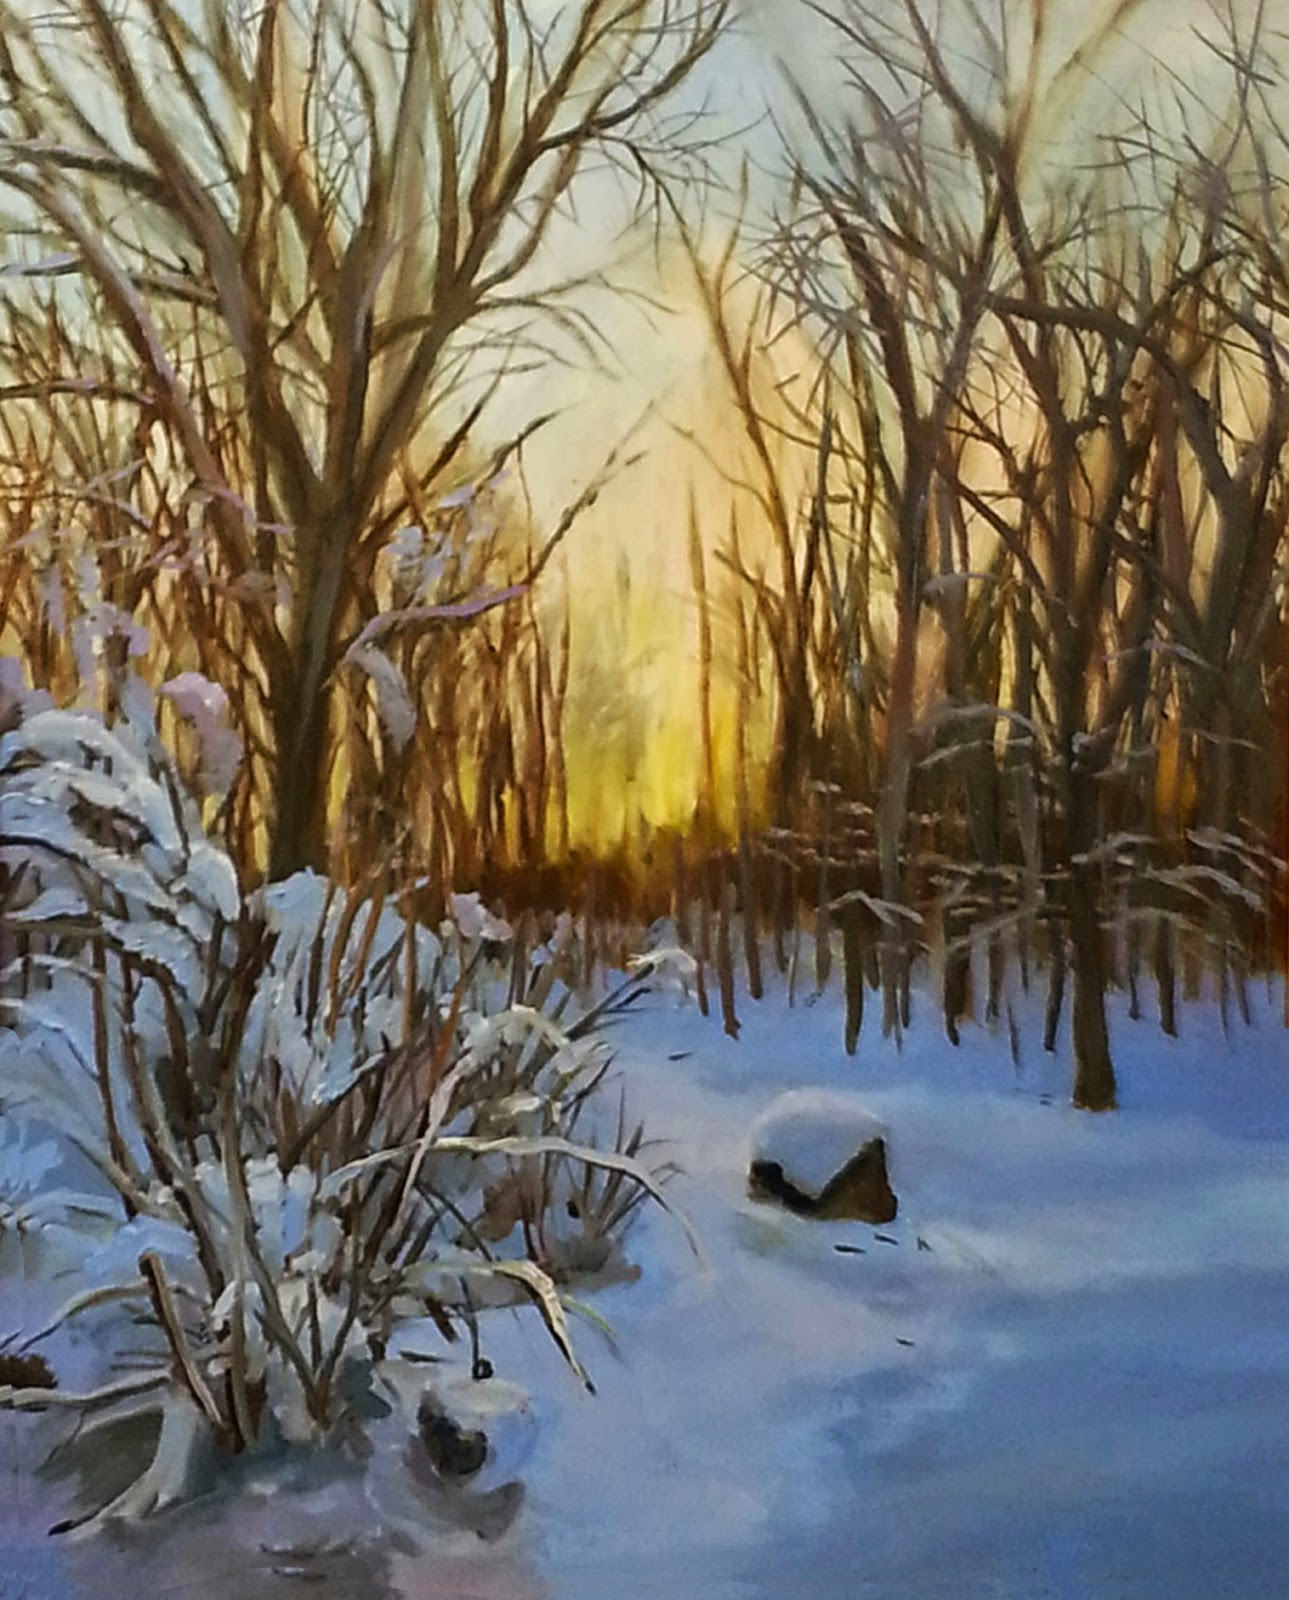 View of sunset through the trees on Thanksgiving Day painted in oils